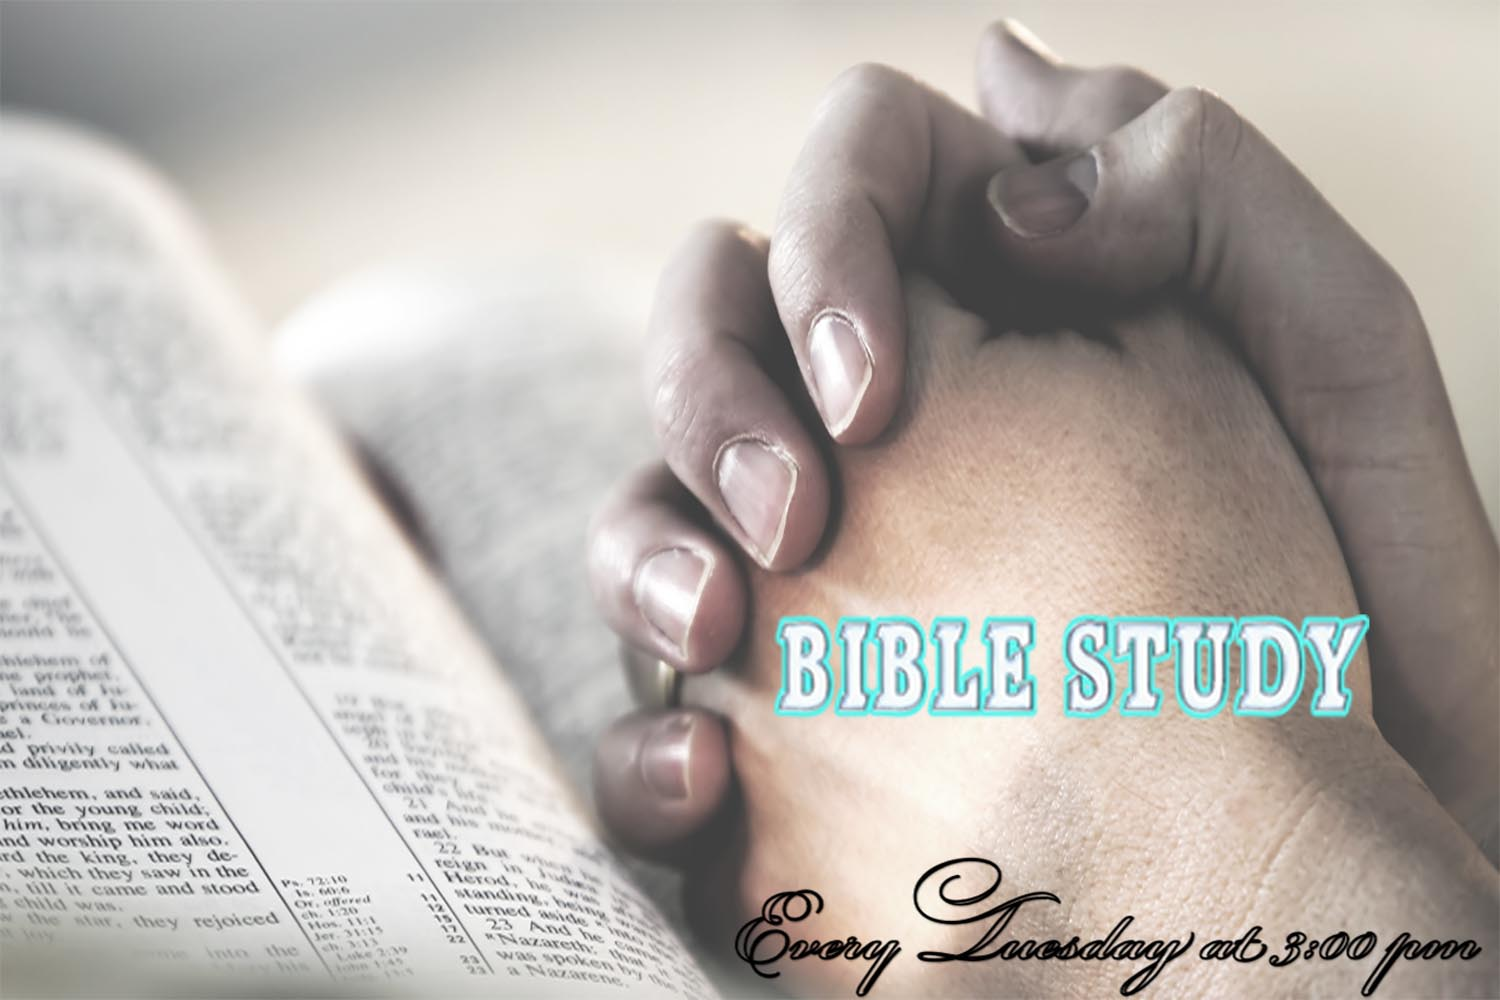 Bible Study Webpage 1500 by 1000 pixels 2018.jpg